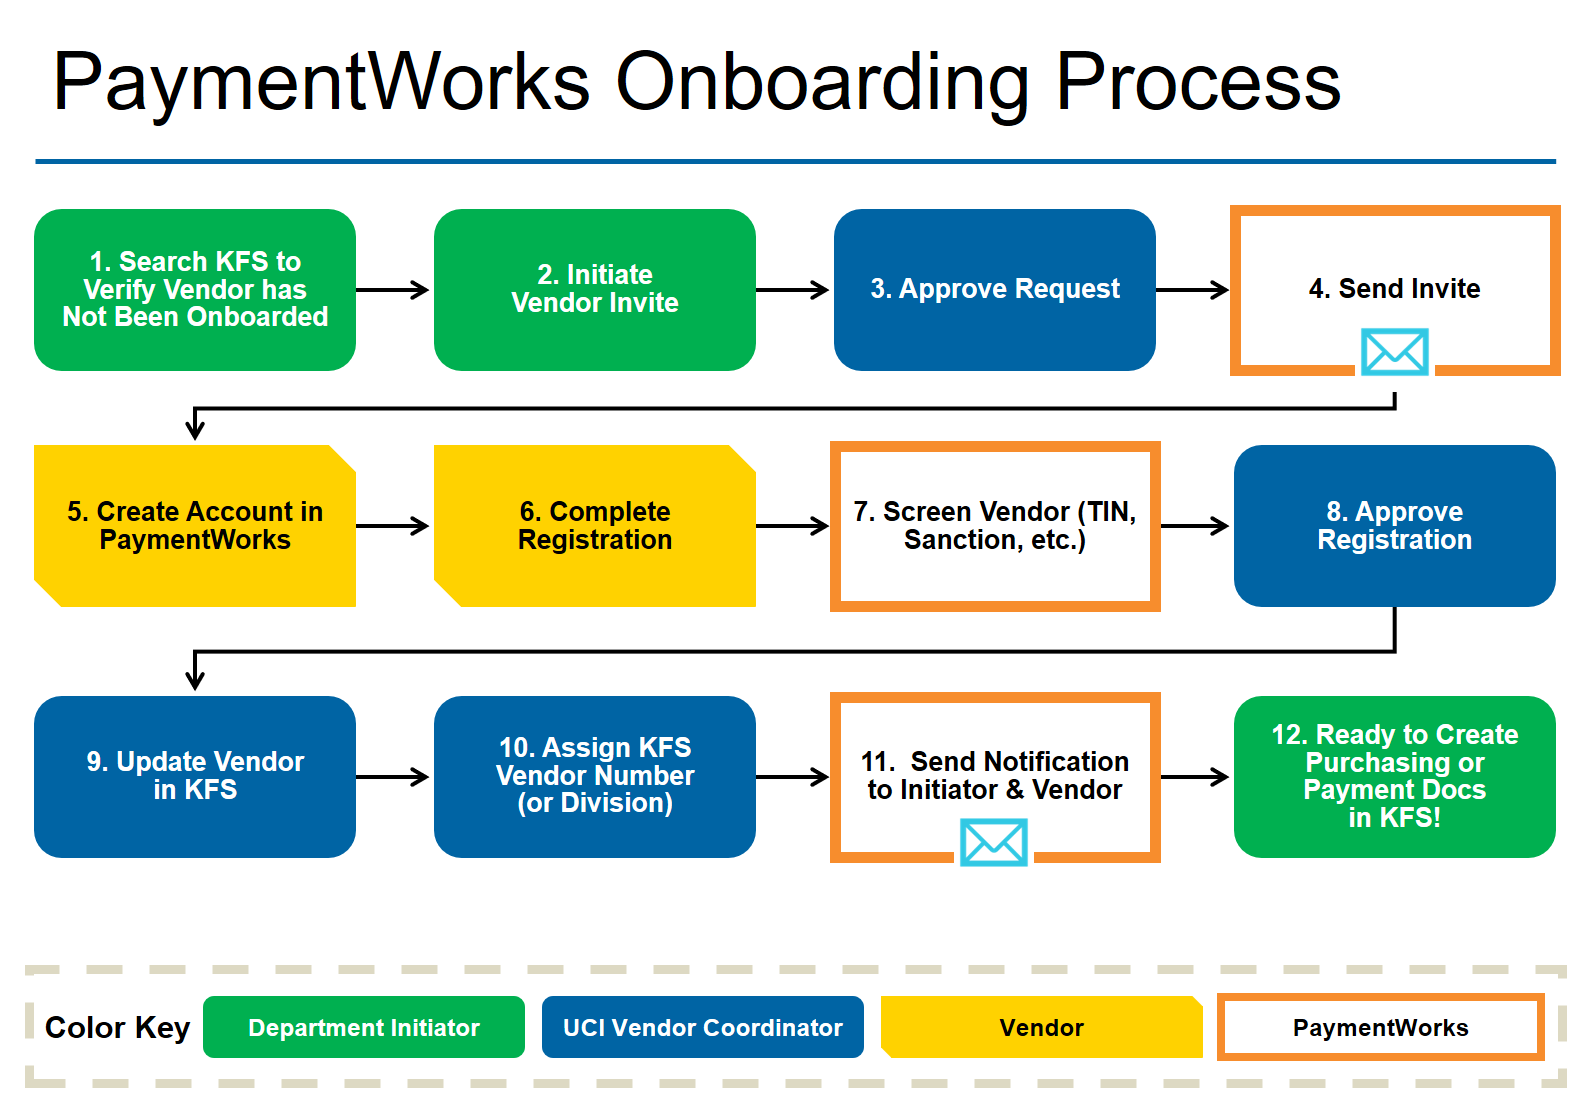 PaymentWorks process map showing the workflow of the sytem